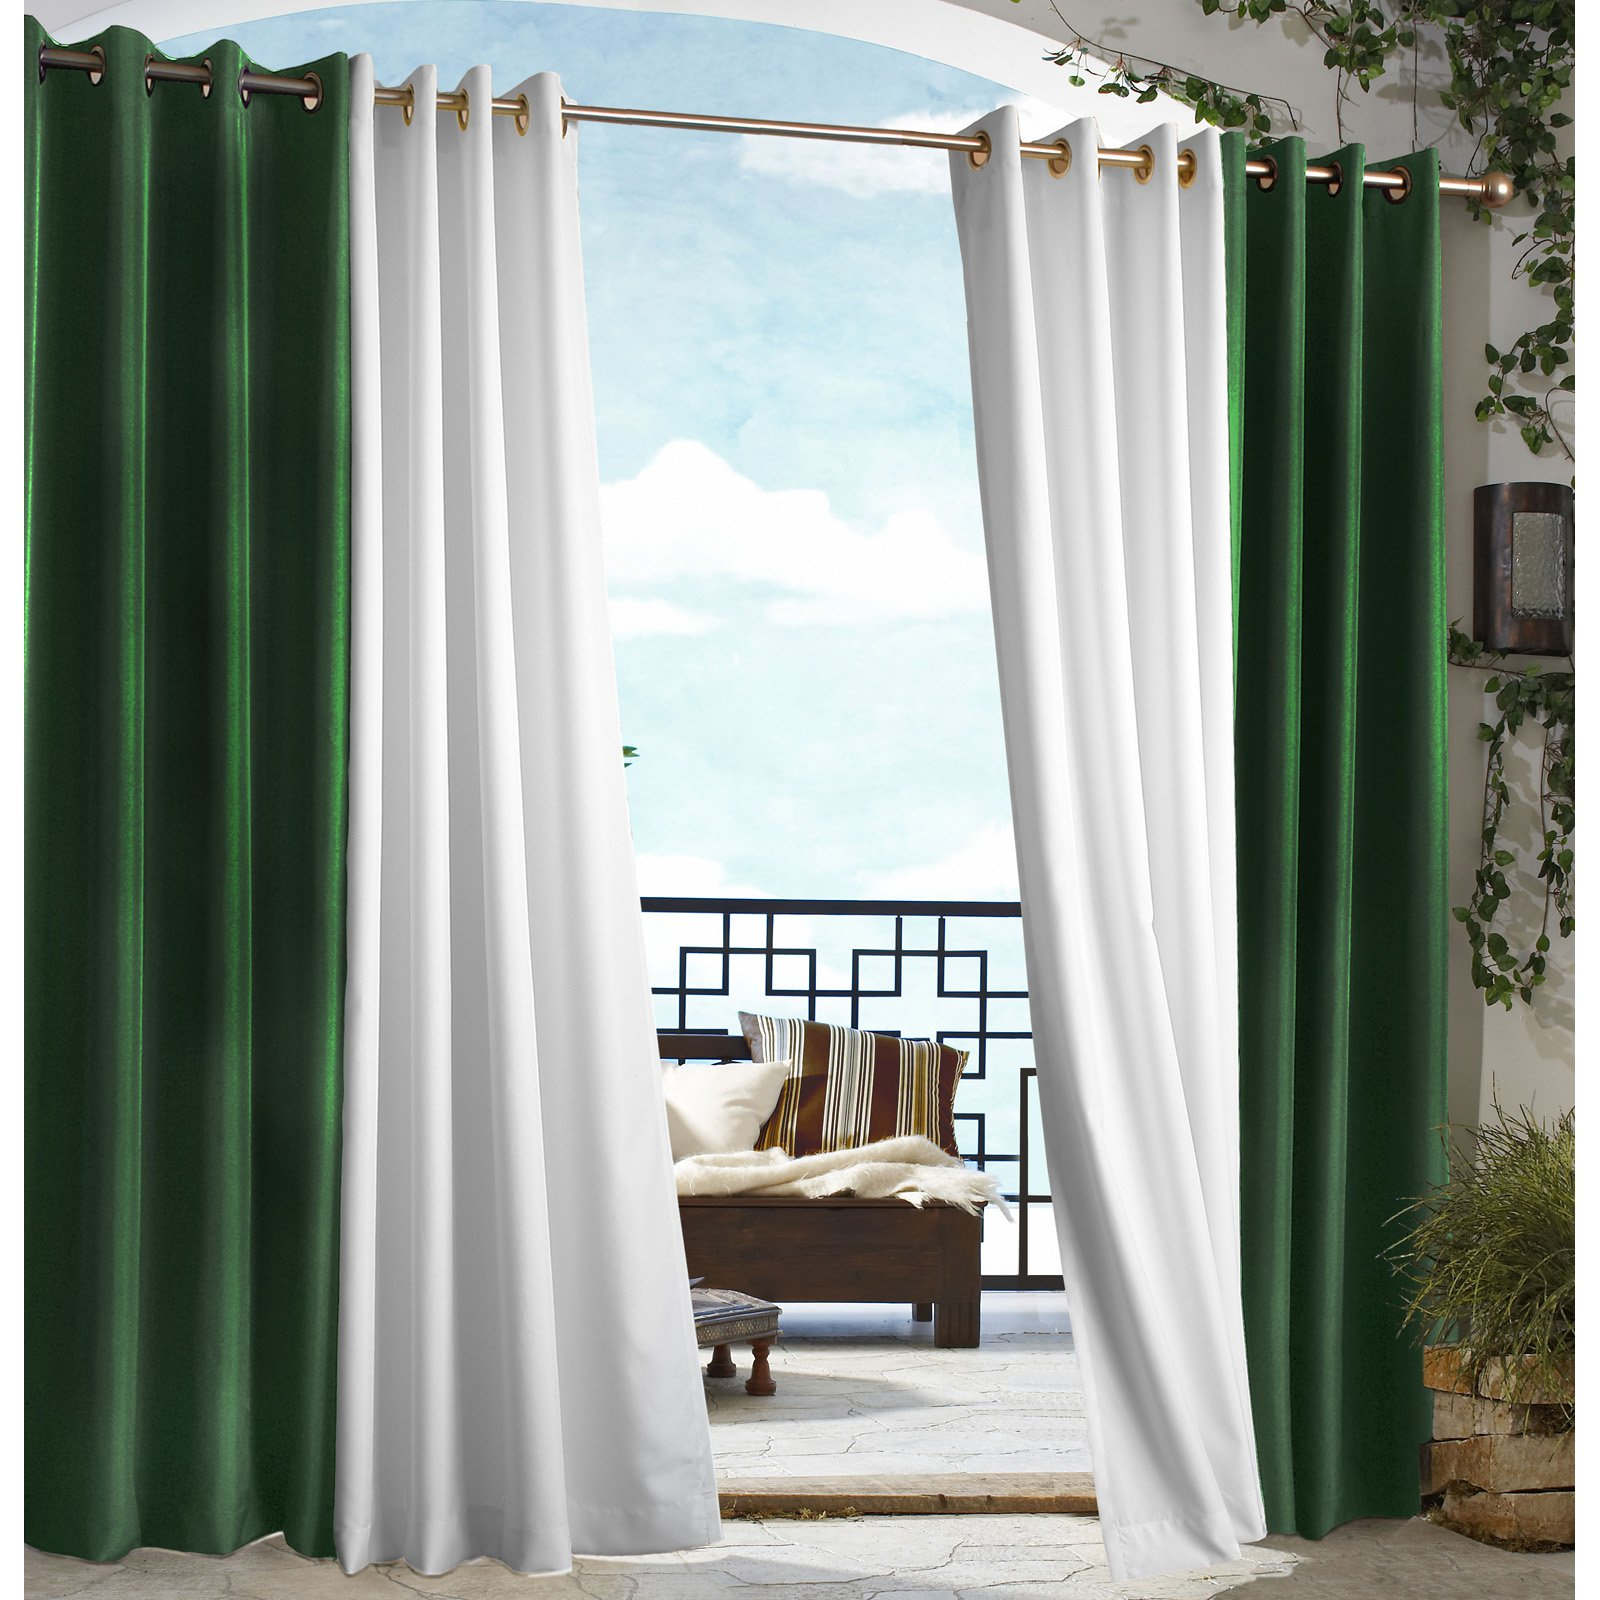 curtains winter outdoor on pergolas easy and providing make yourself for patio up s pin hang that by to this your warm pergola some fall insulation